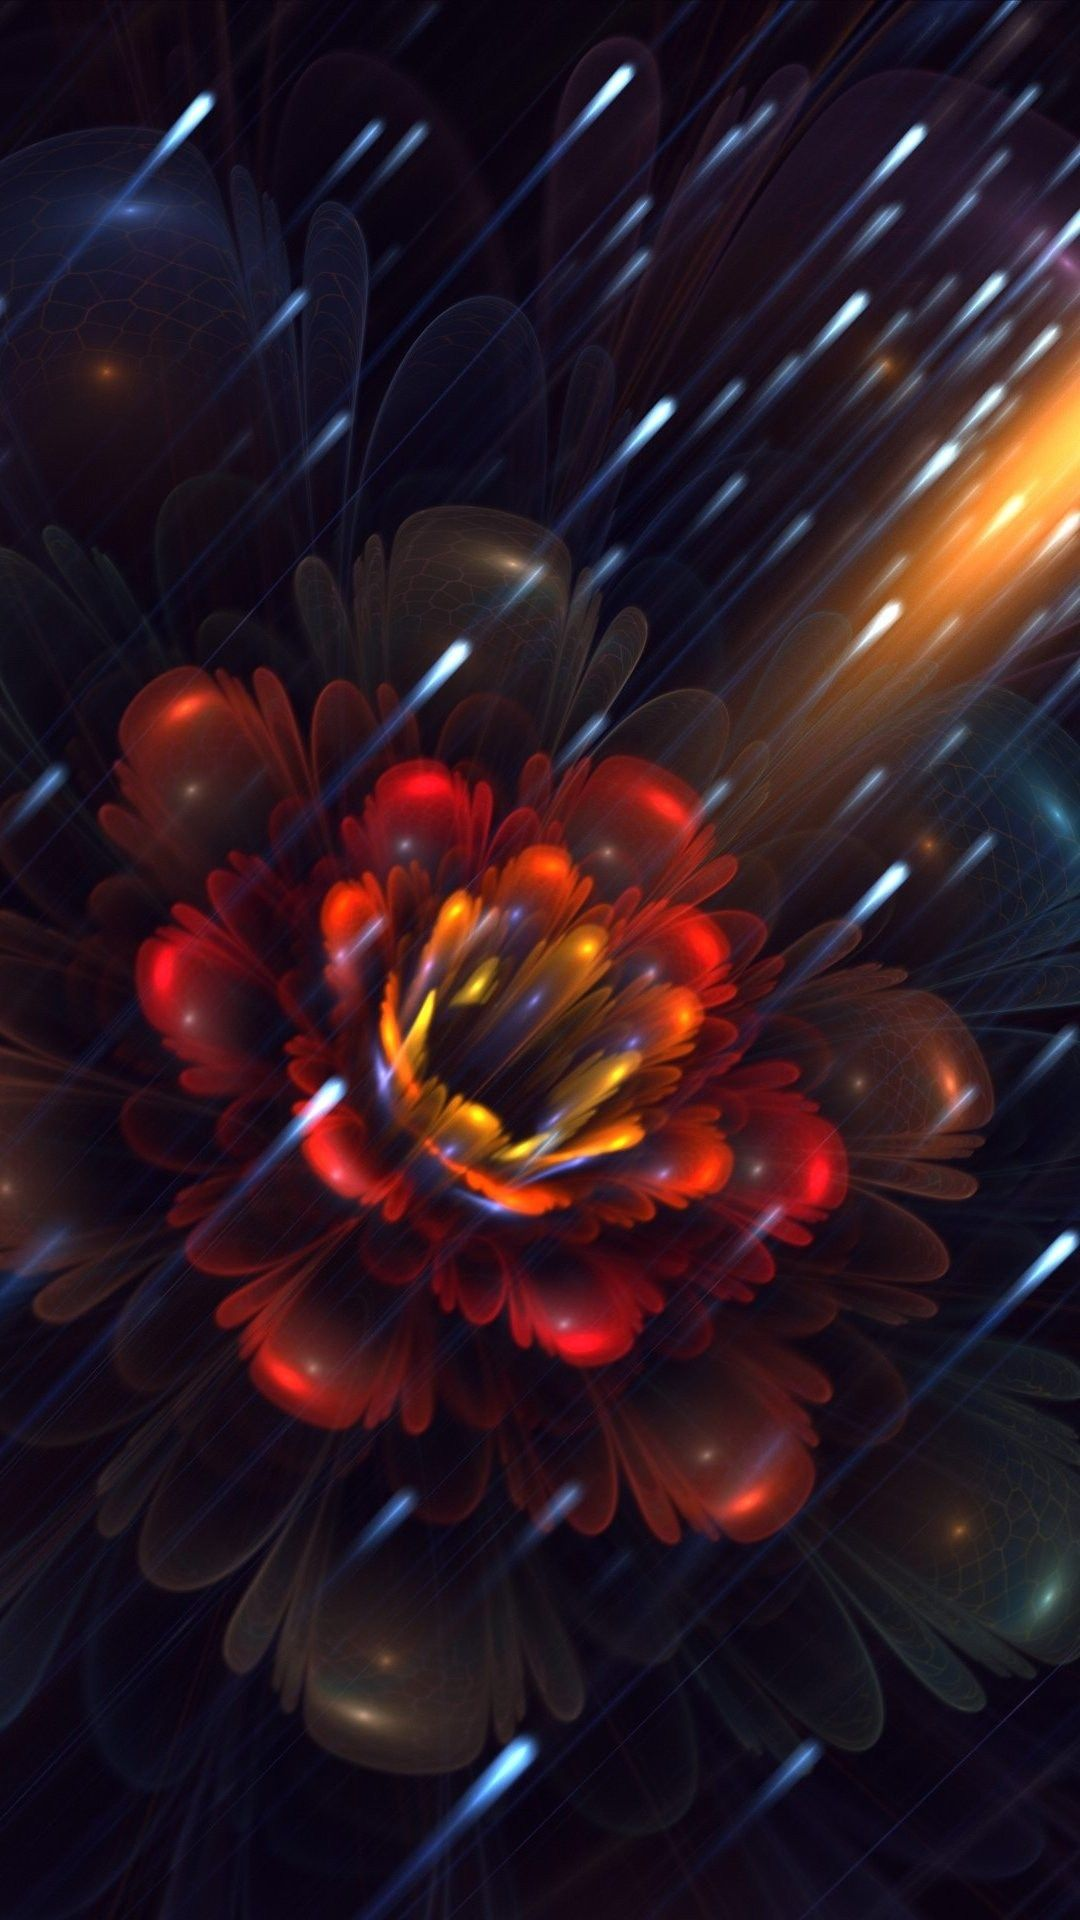 free photos animated images Moving wallpaper iphone